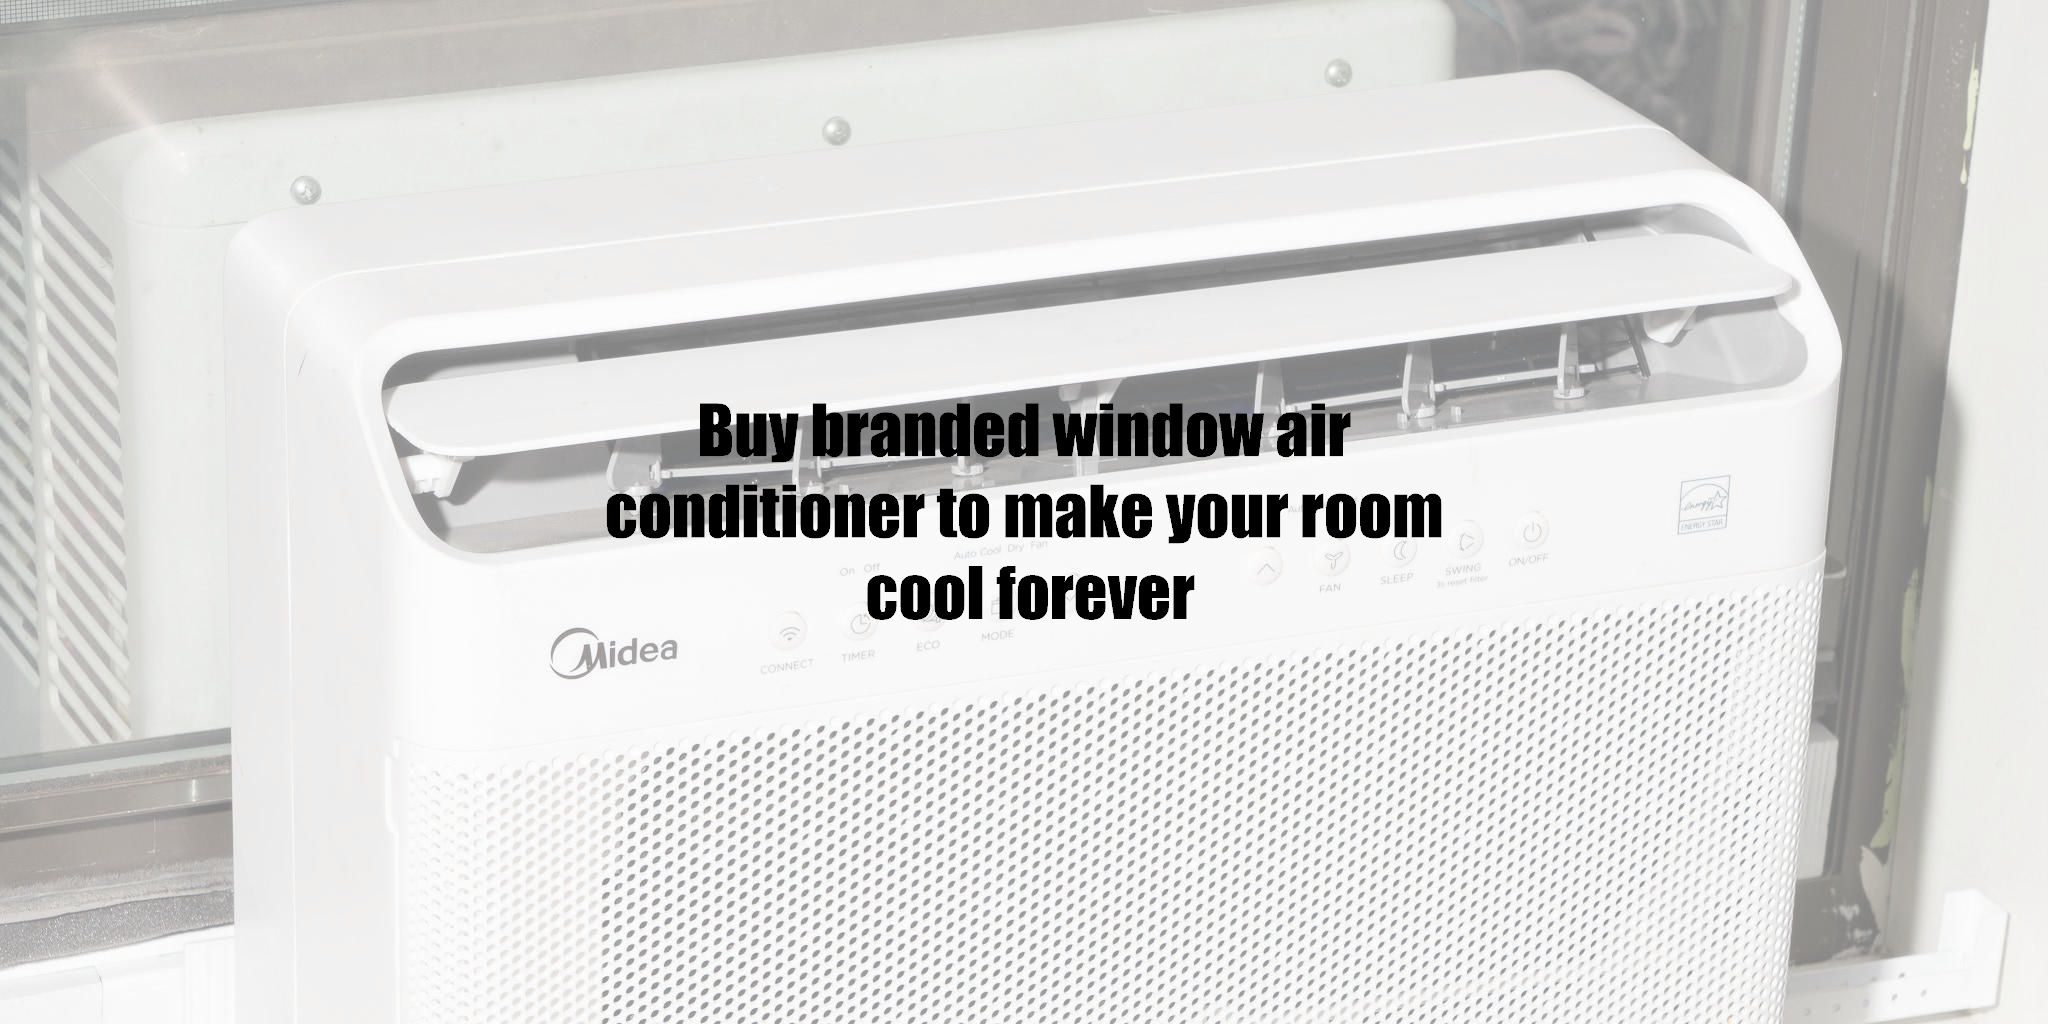 Buy branded window air conditioner to make your room cool forever